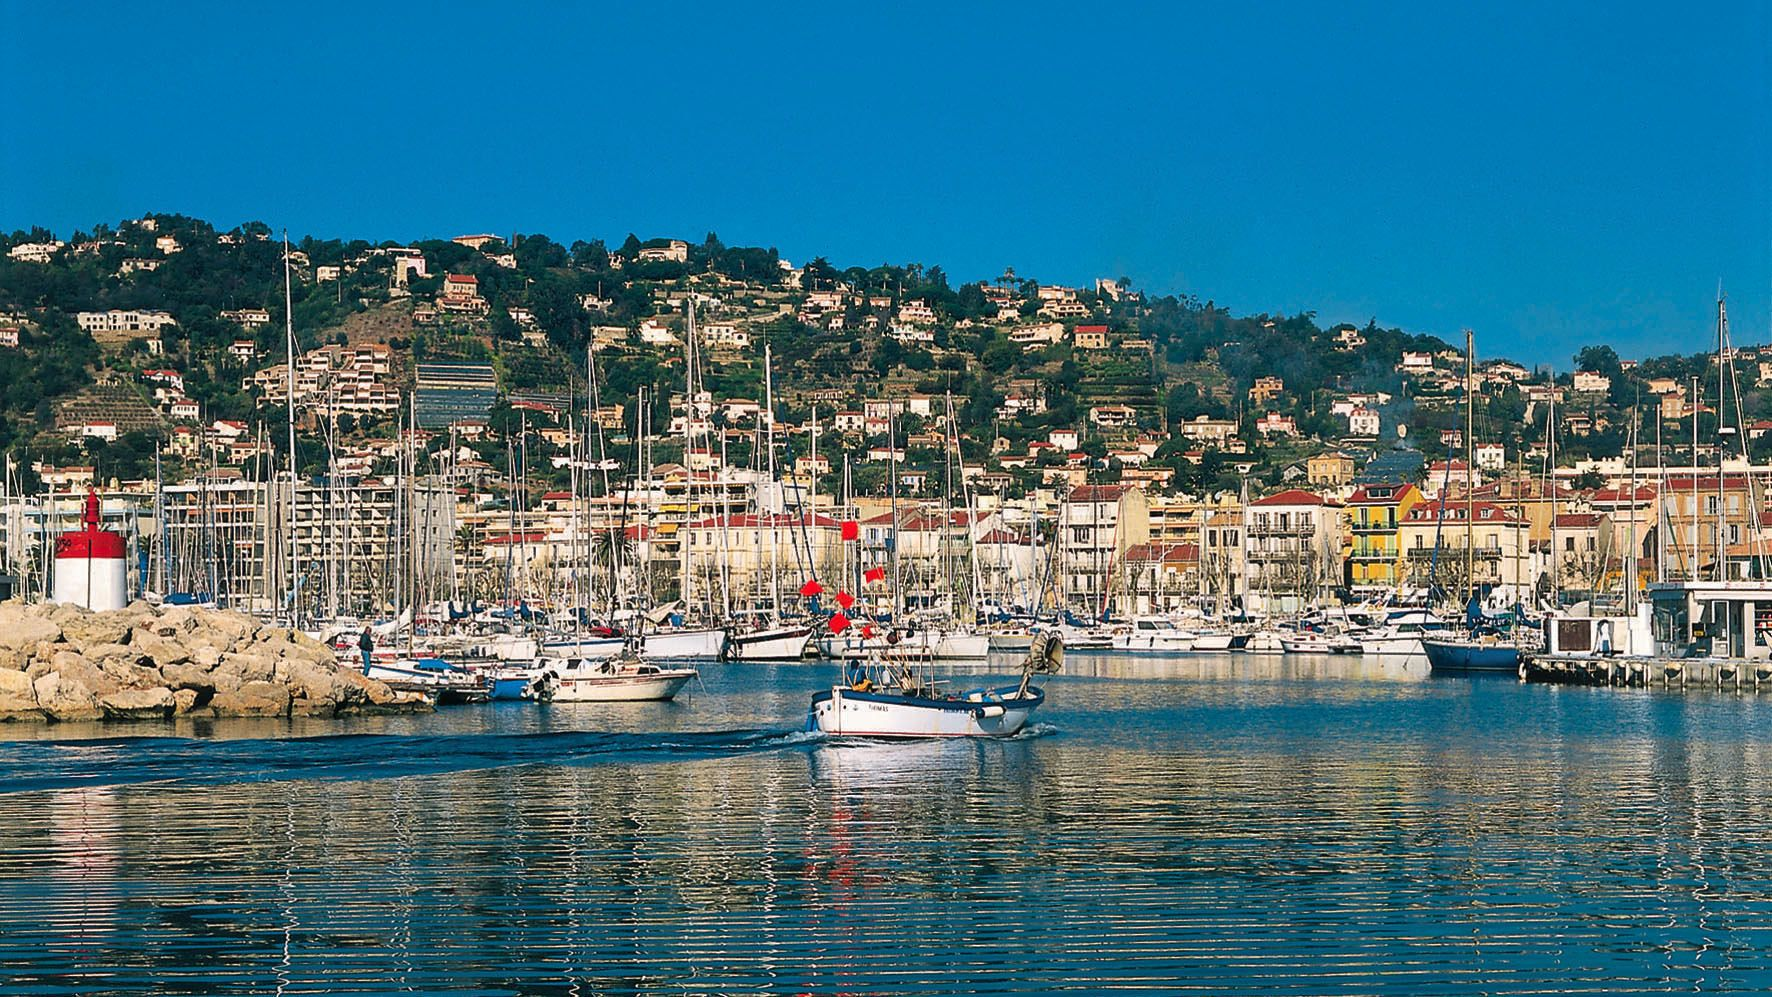 Stunning view of the water overlooking the coast in Cannes